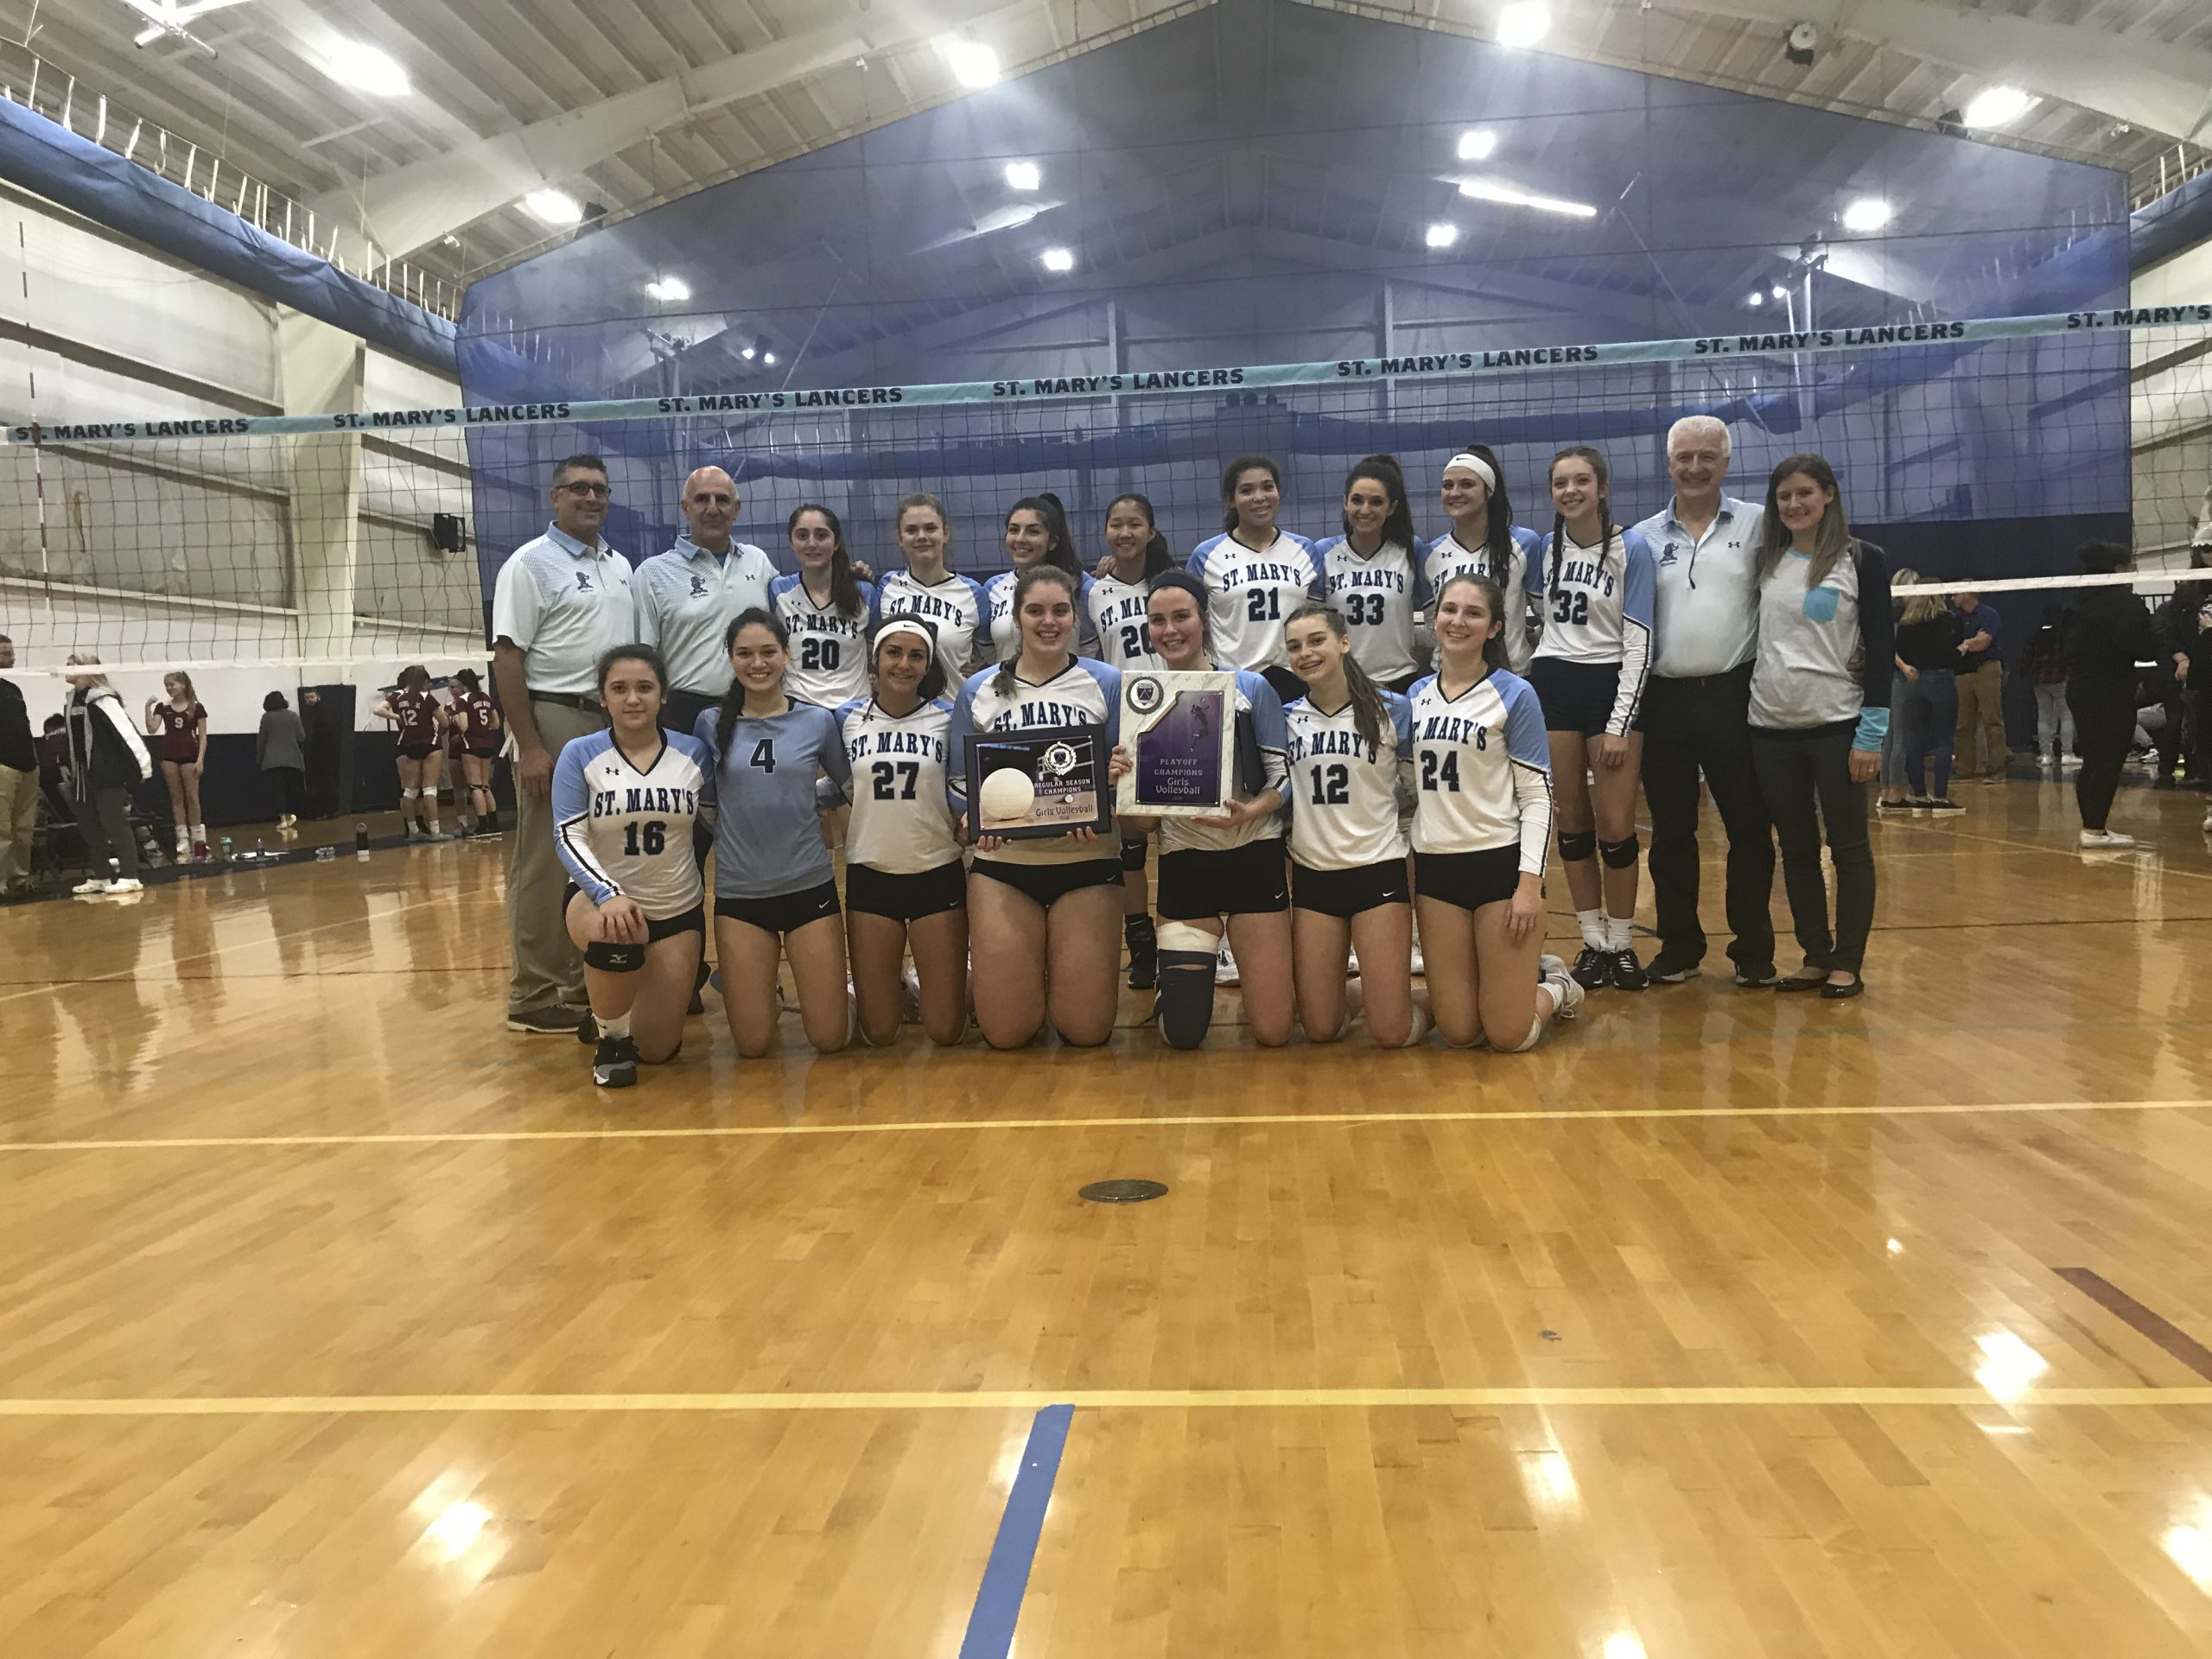 St. Mary's, Canisius Extend Monsignor Martin Championship Streaks